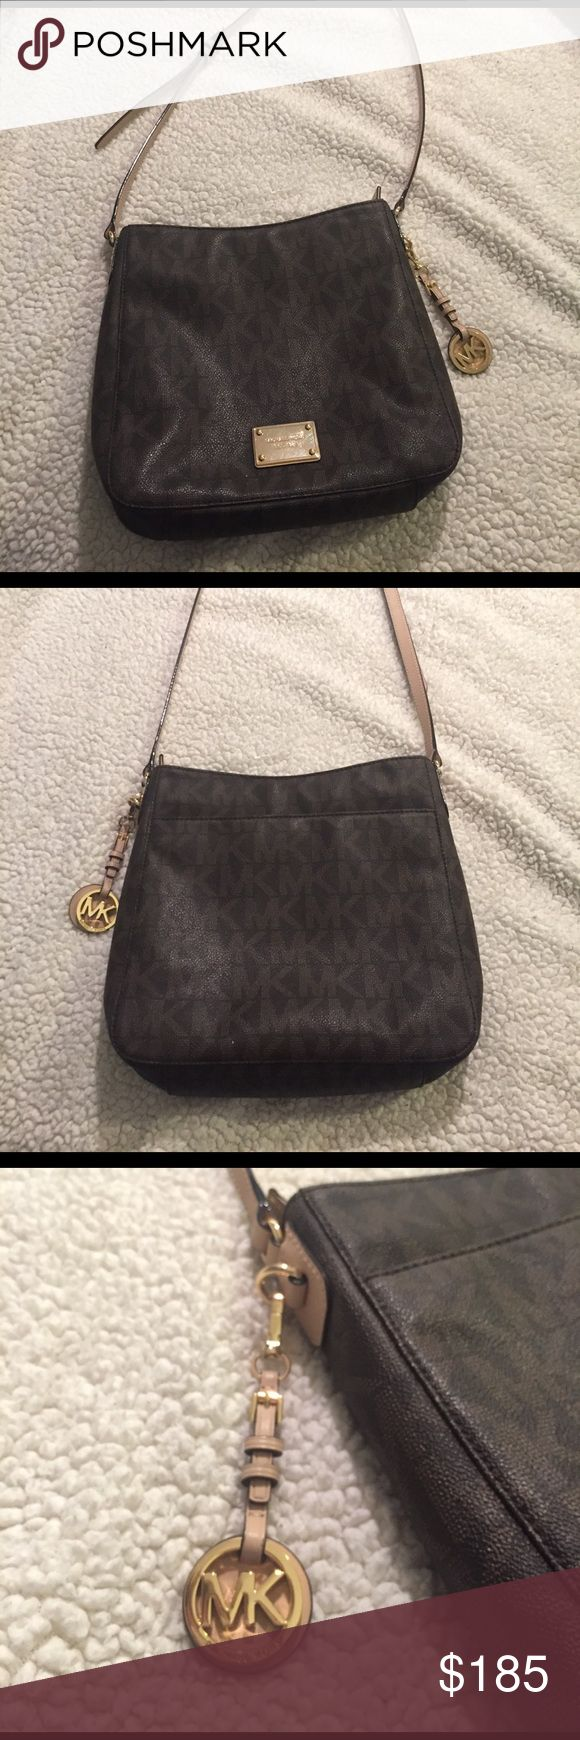 """Authentic Michael Kors Jet Set Large Crossbody Bag Authentic worn twice Micheal Kors """"Jet Set Large Travel Signature Cross-body Handbag. Measurements: 10'' x 10'"""" holds a lot and is great for travel. One outside button pocket. Adjustable over the shoulder leather straps. 4 inside compartments. PERFECT condition. Comment questions and interests❗️ Michael Kors Bags Crossbody Bags"""